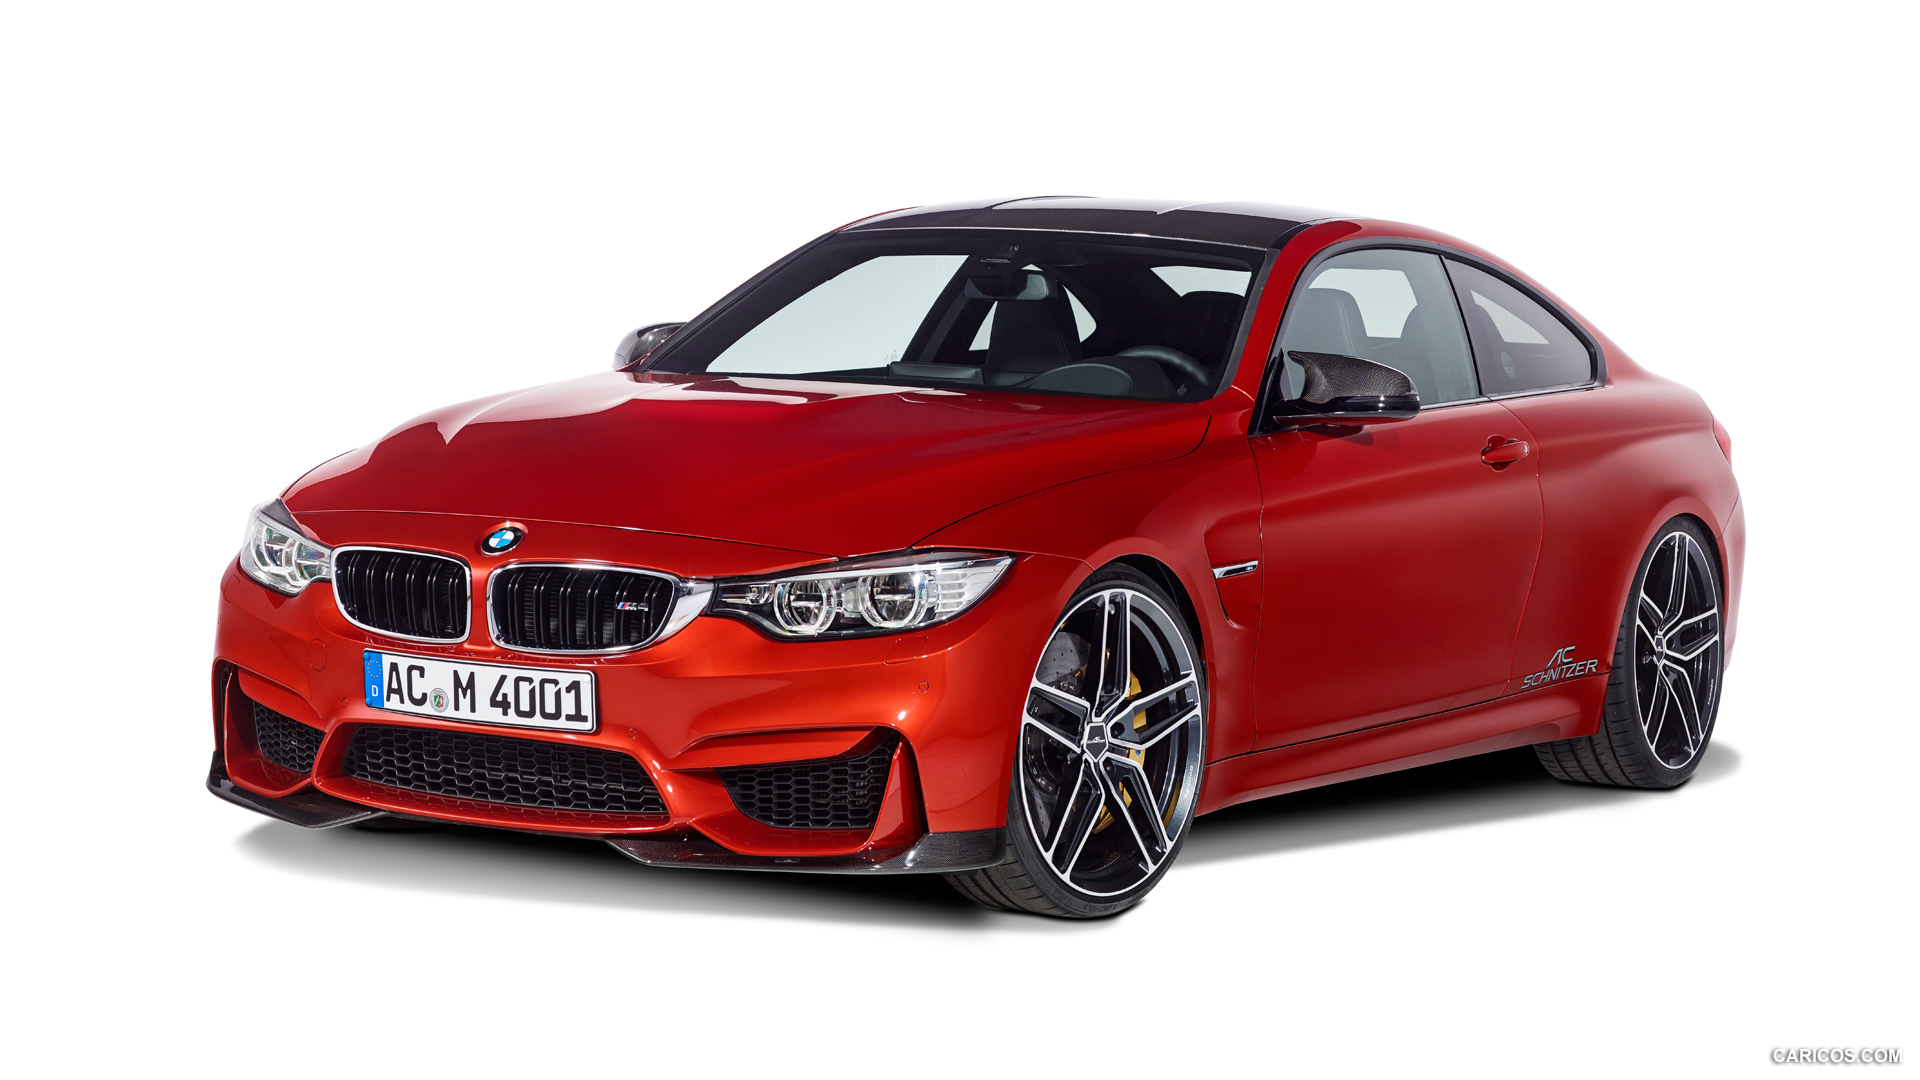 AC Schnitzer BMW M4 Coupe photo 133768